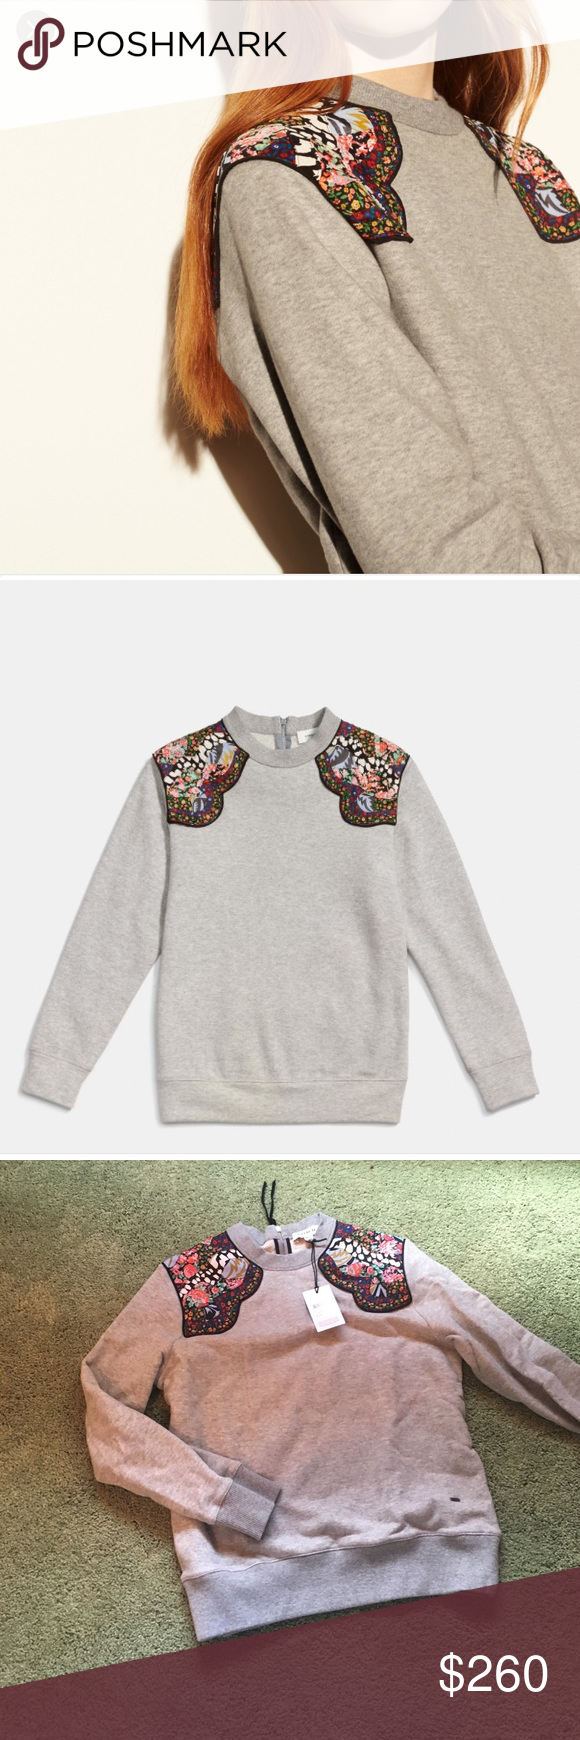 Coach western surf sweatshirt BNWT perfect condition. Lost the receipt so I cannot return it. Only reason I am selling is because it is too small. Coach Sweaters Crew & Scoop Necks